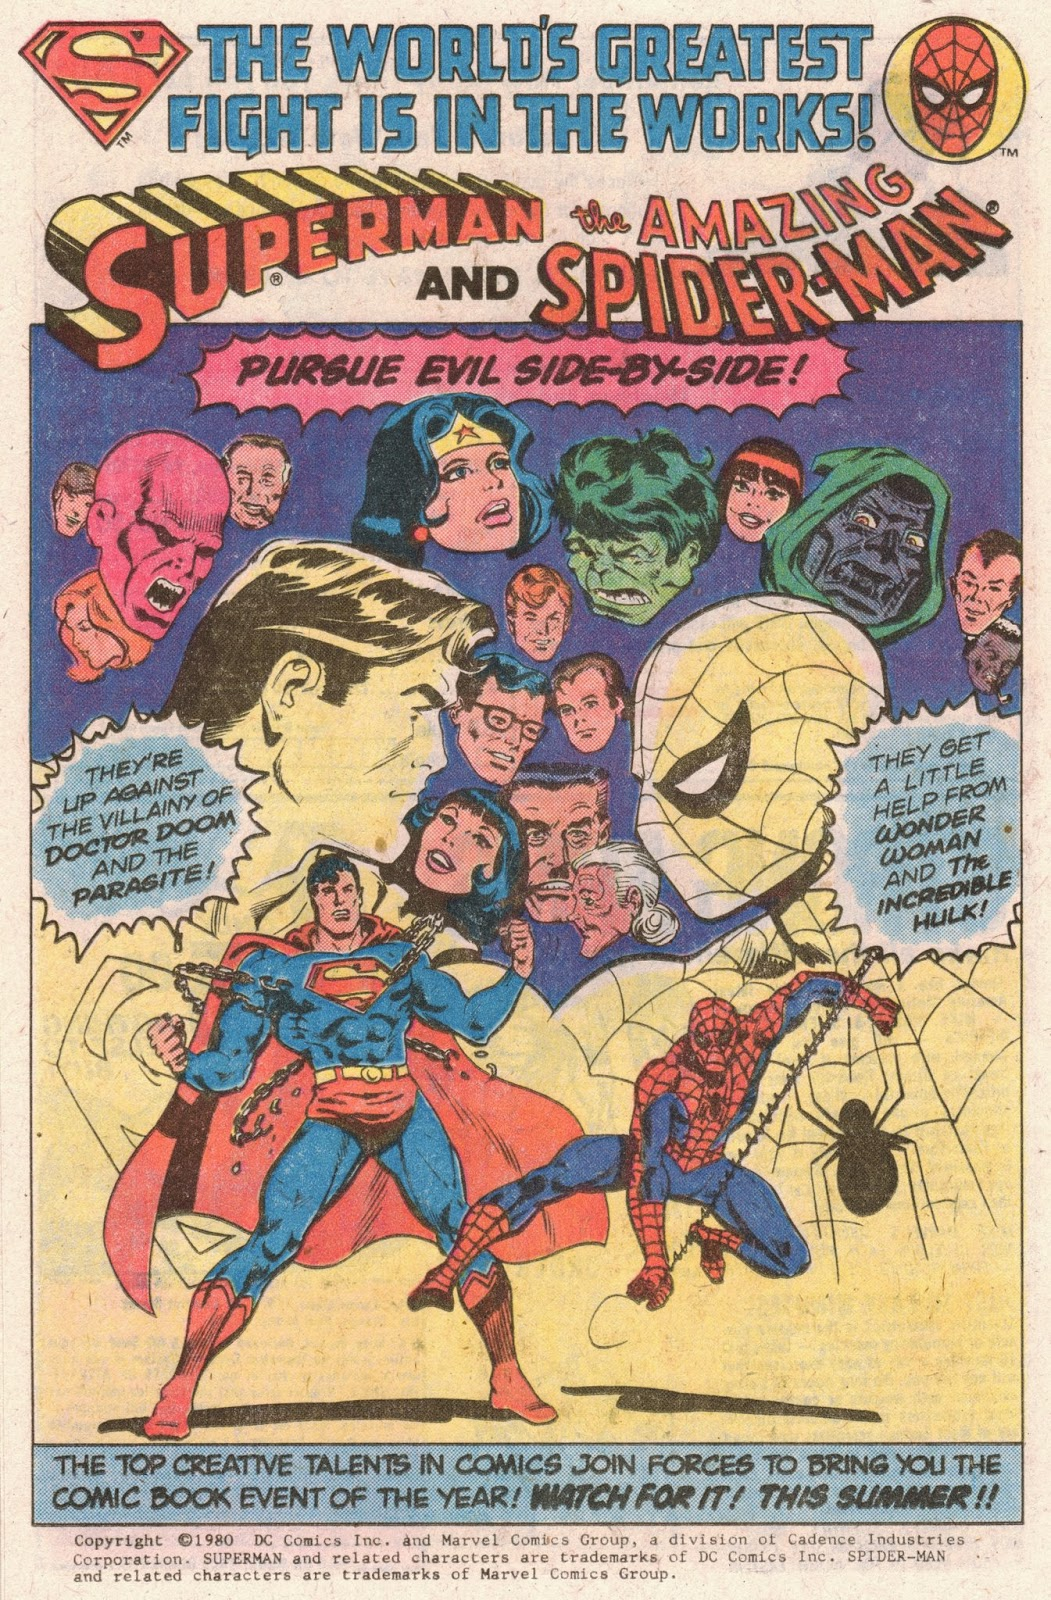 Superman and Spider-Man 1980 ad 01